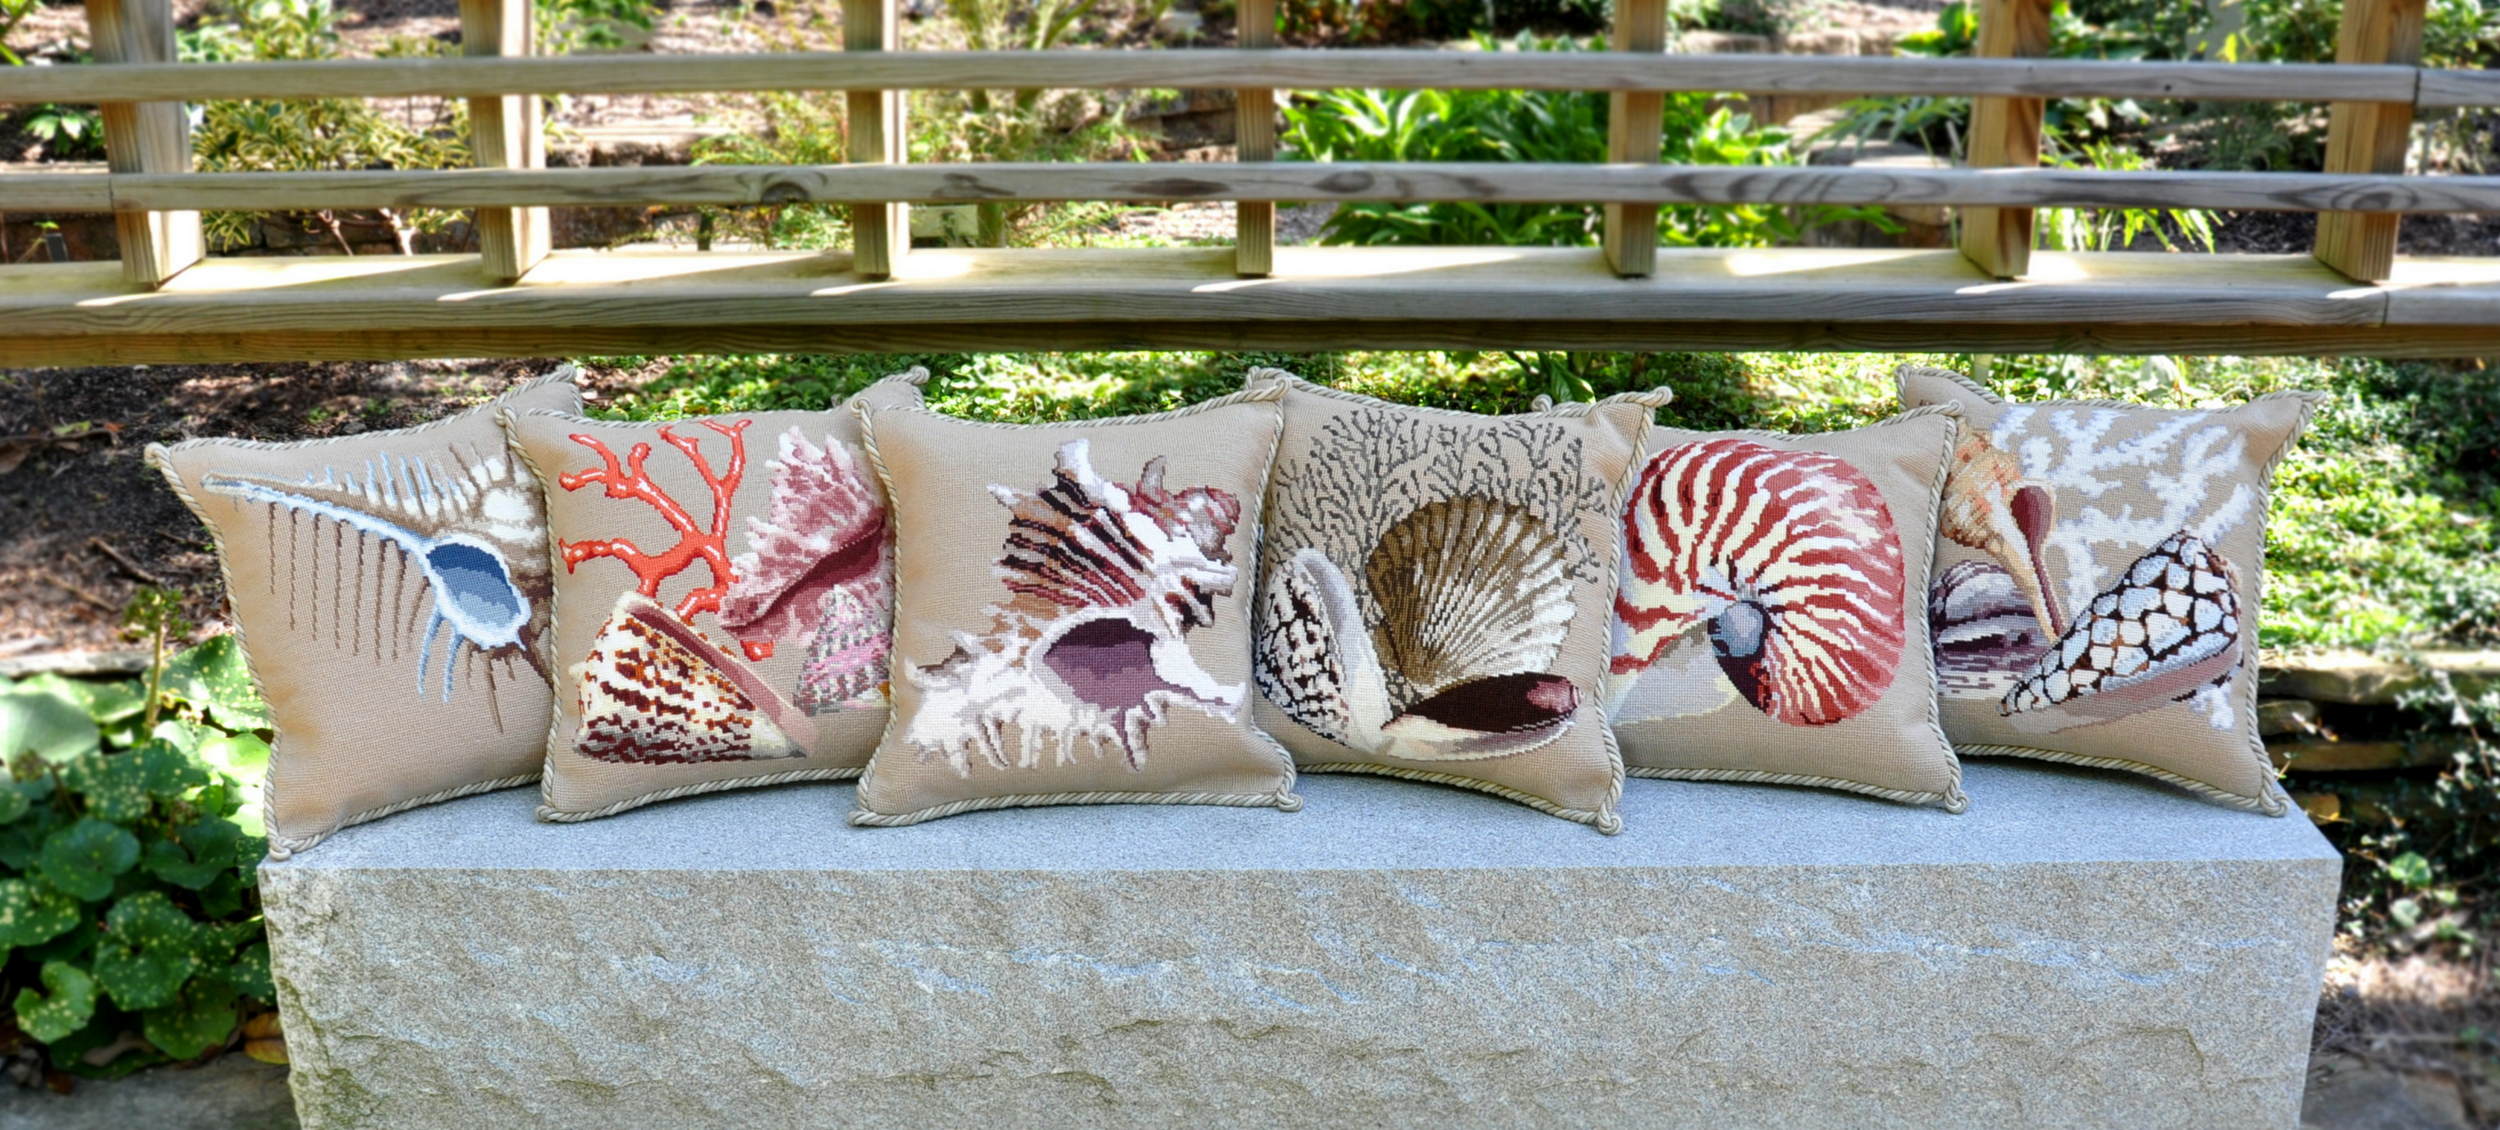 Shells needlepoint pillows